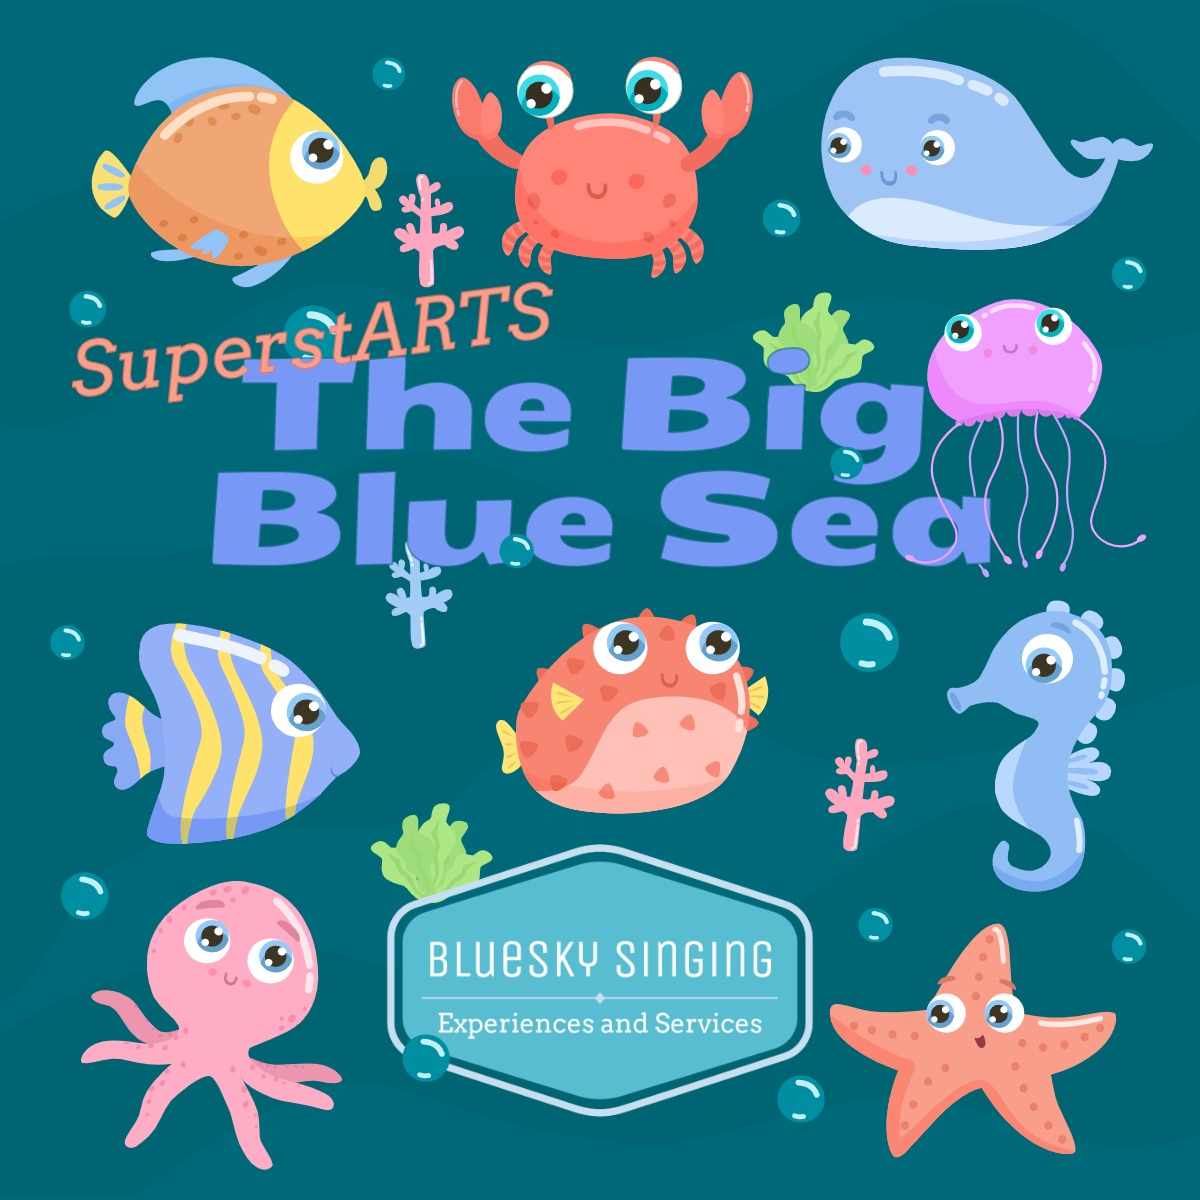 · For Infants: The Big Blue Sea is our current SuperstARTS topic which will have classes singing about the seaside, oceans, and all kinds sea creatures! Expect the imaginations of your 4-7 year olds to be whirring! Your EYFS & KS1 classes will each receive a singing workshop ahead of the Experience date.